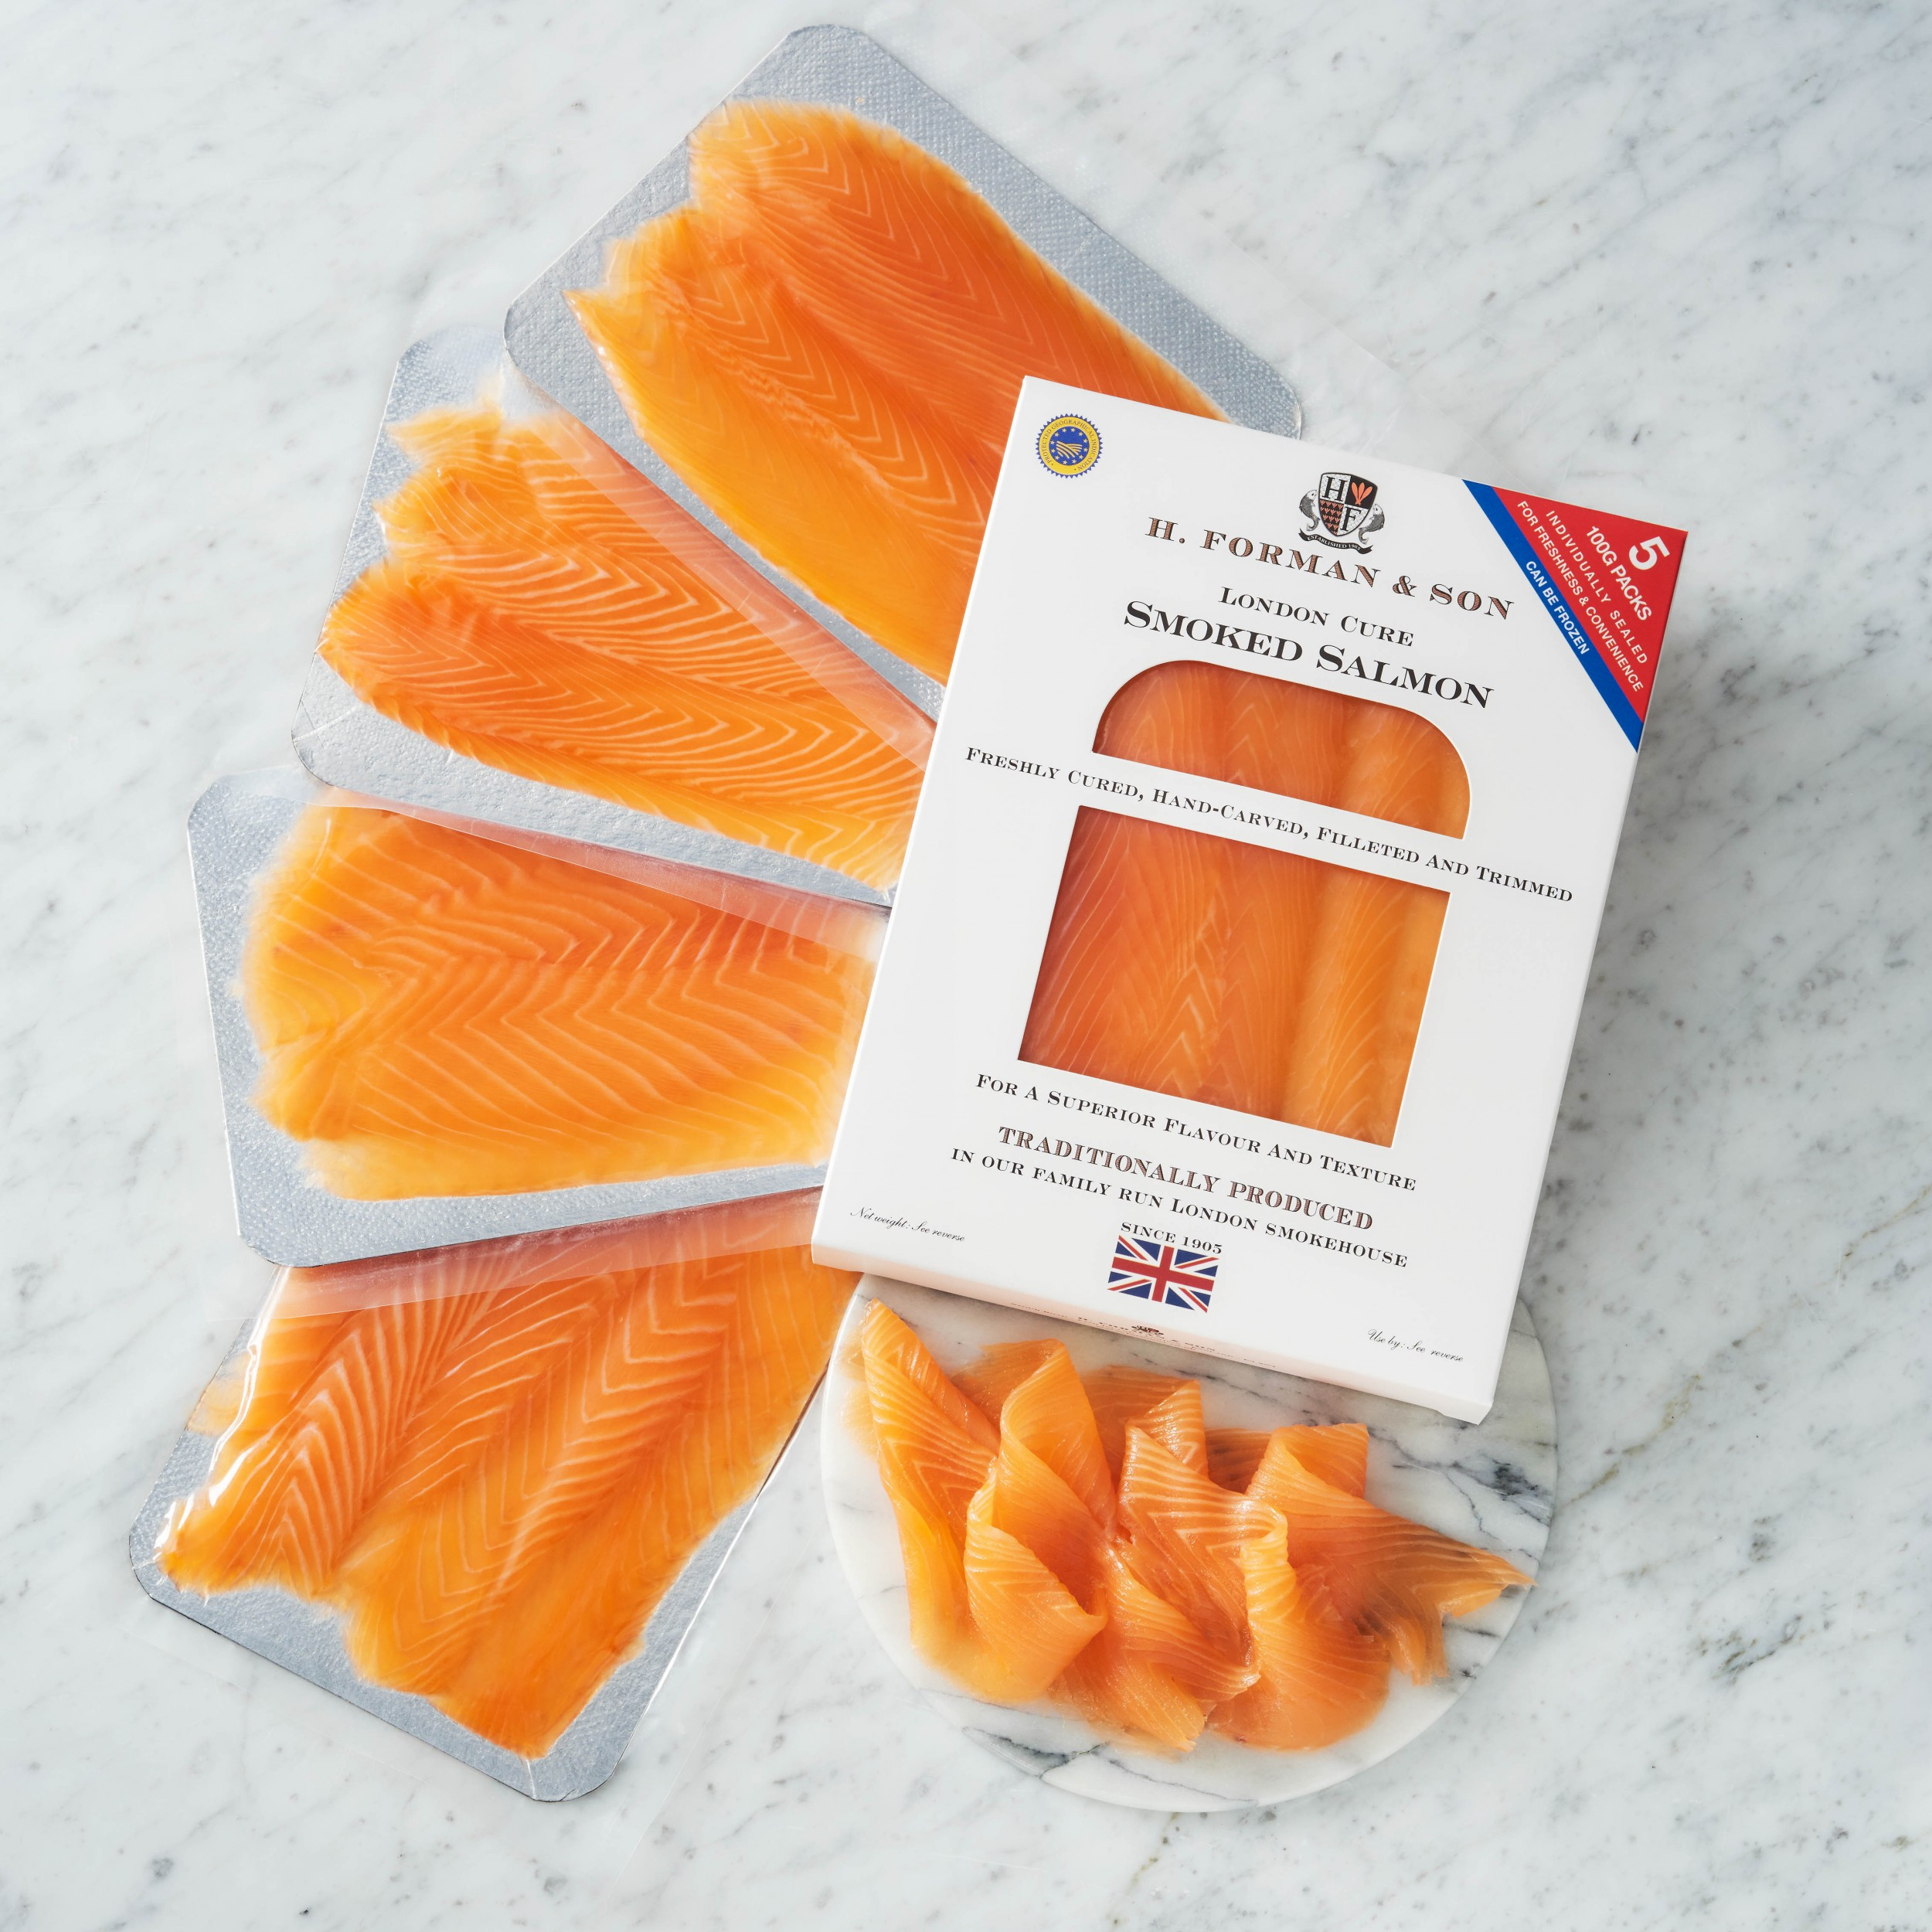 Image of London Cure Salmon Convenience Pack